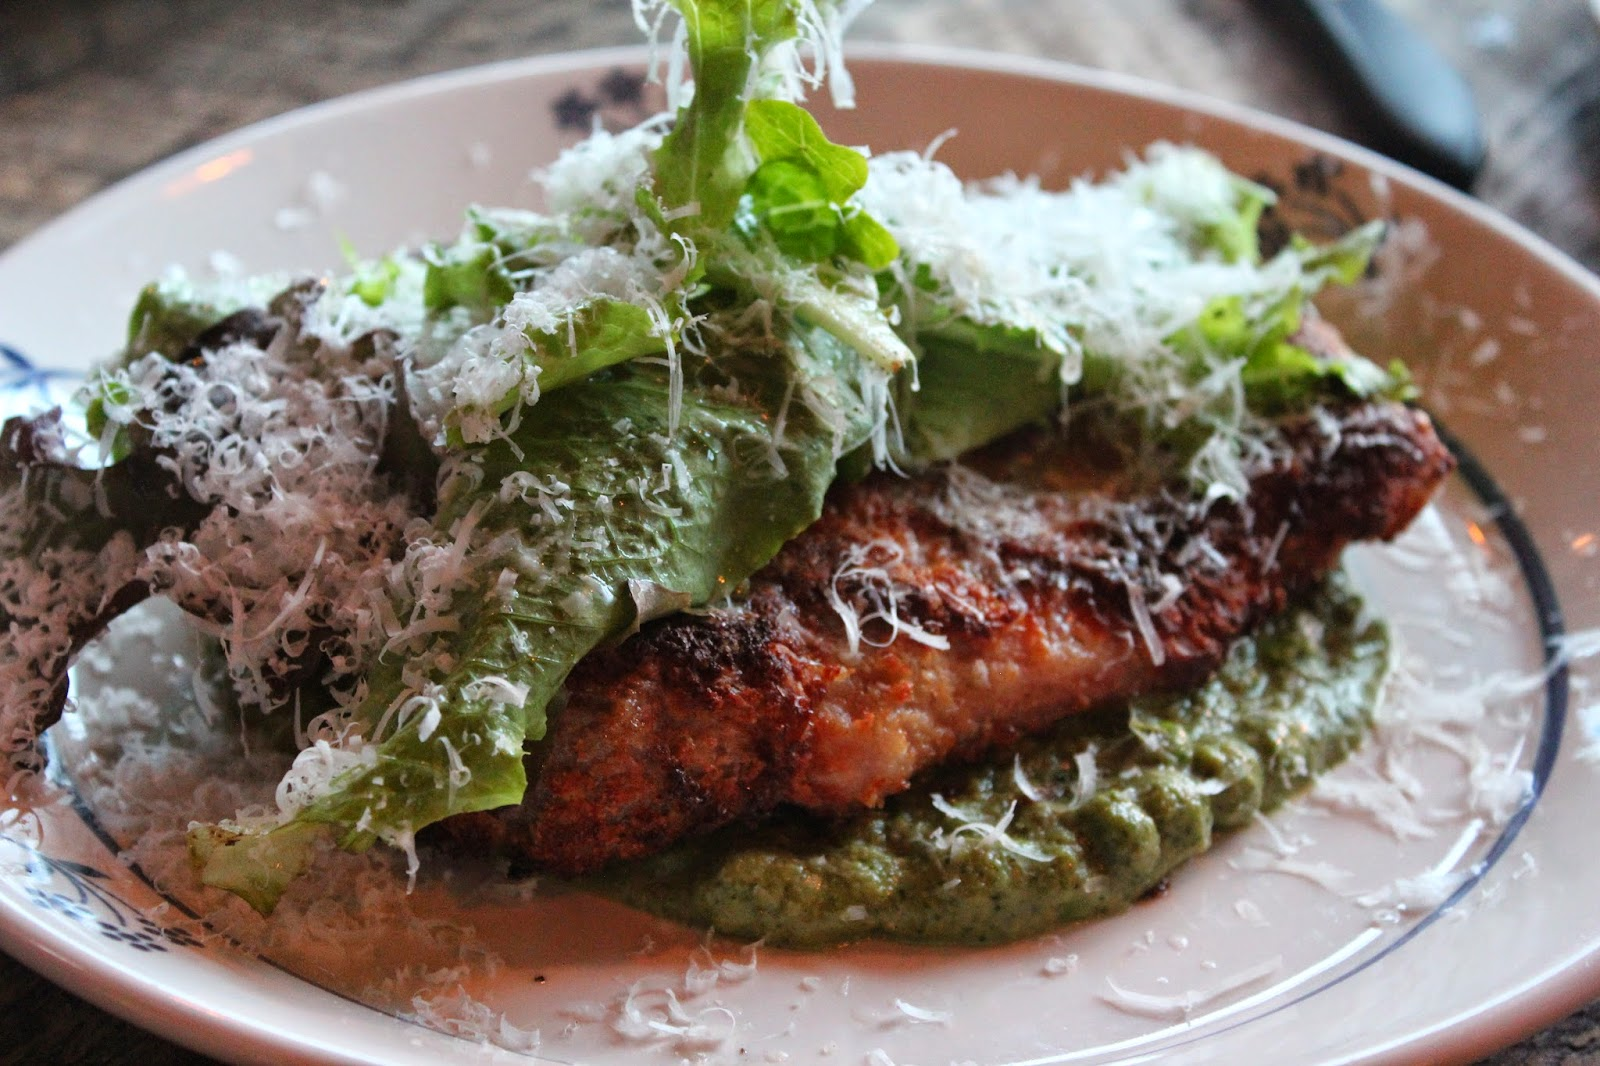 Smoked pork milanese with mushy peas at La Brasa, Somerville, Mass.